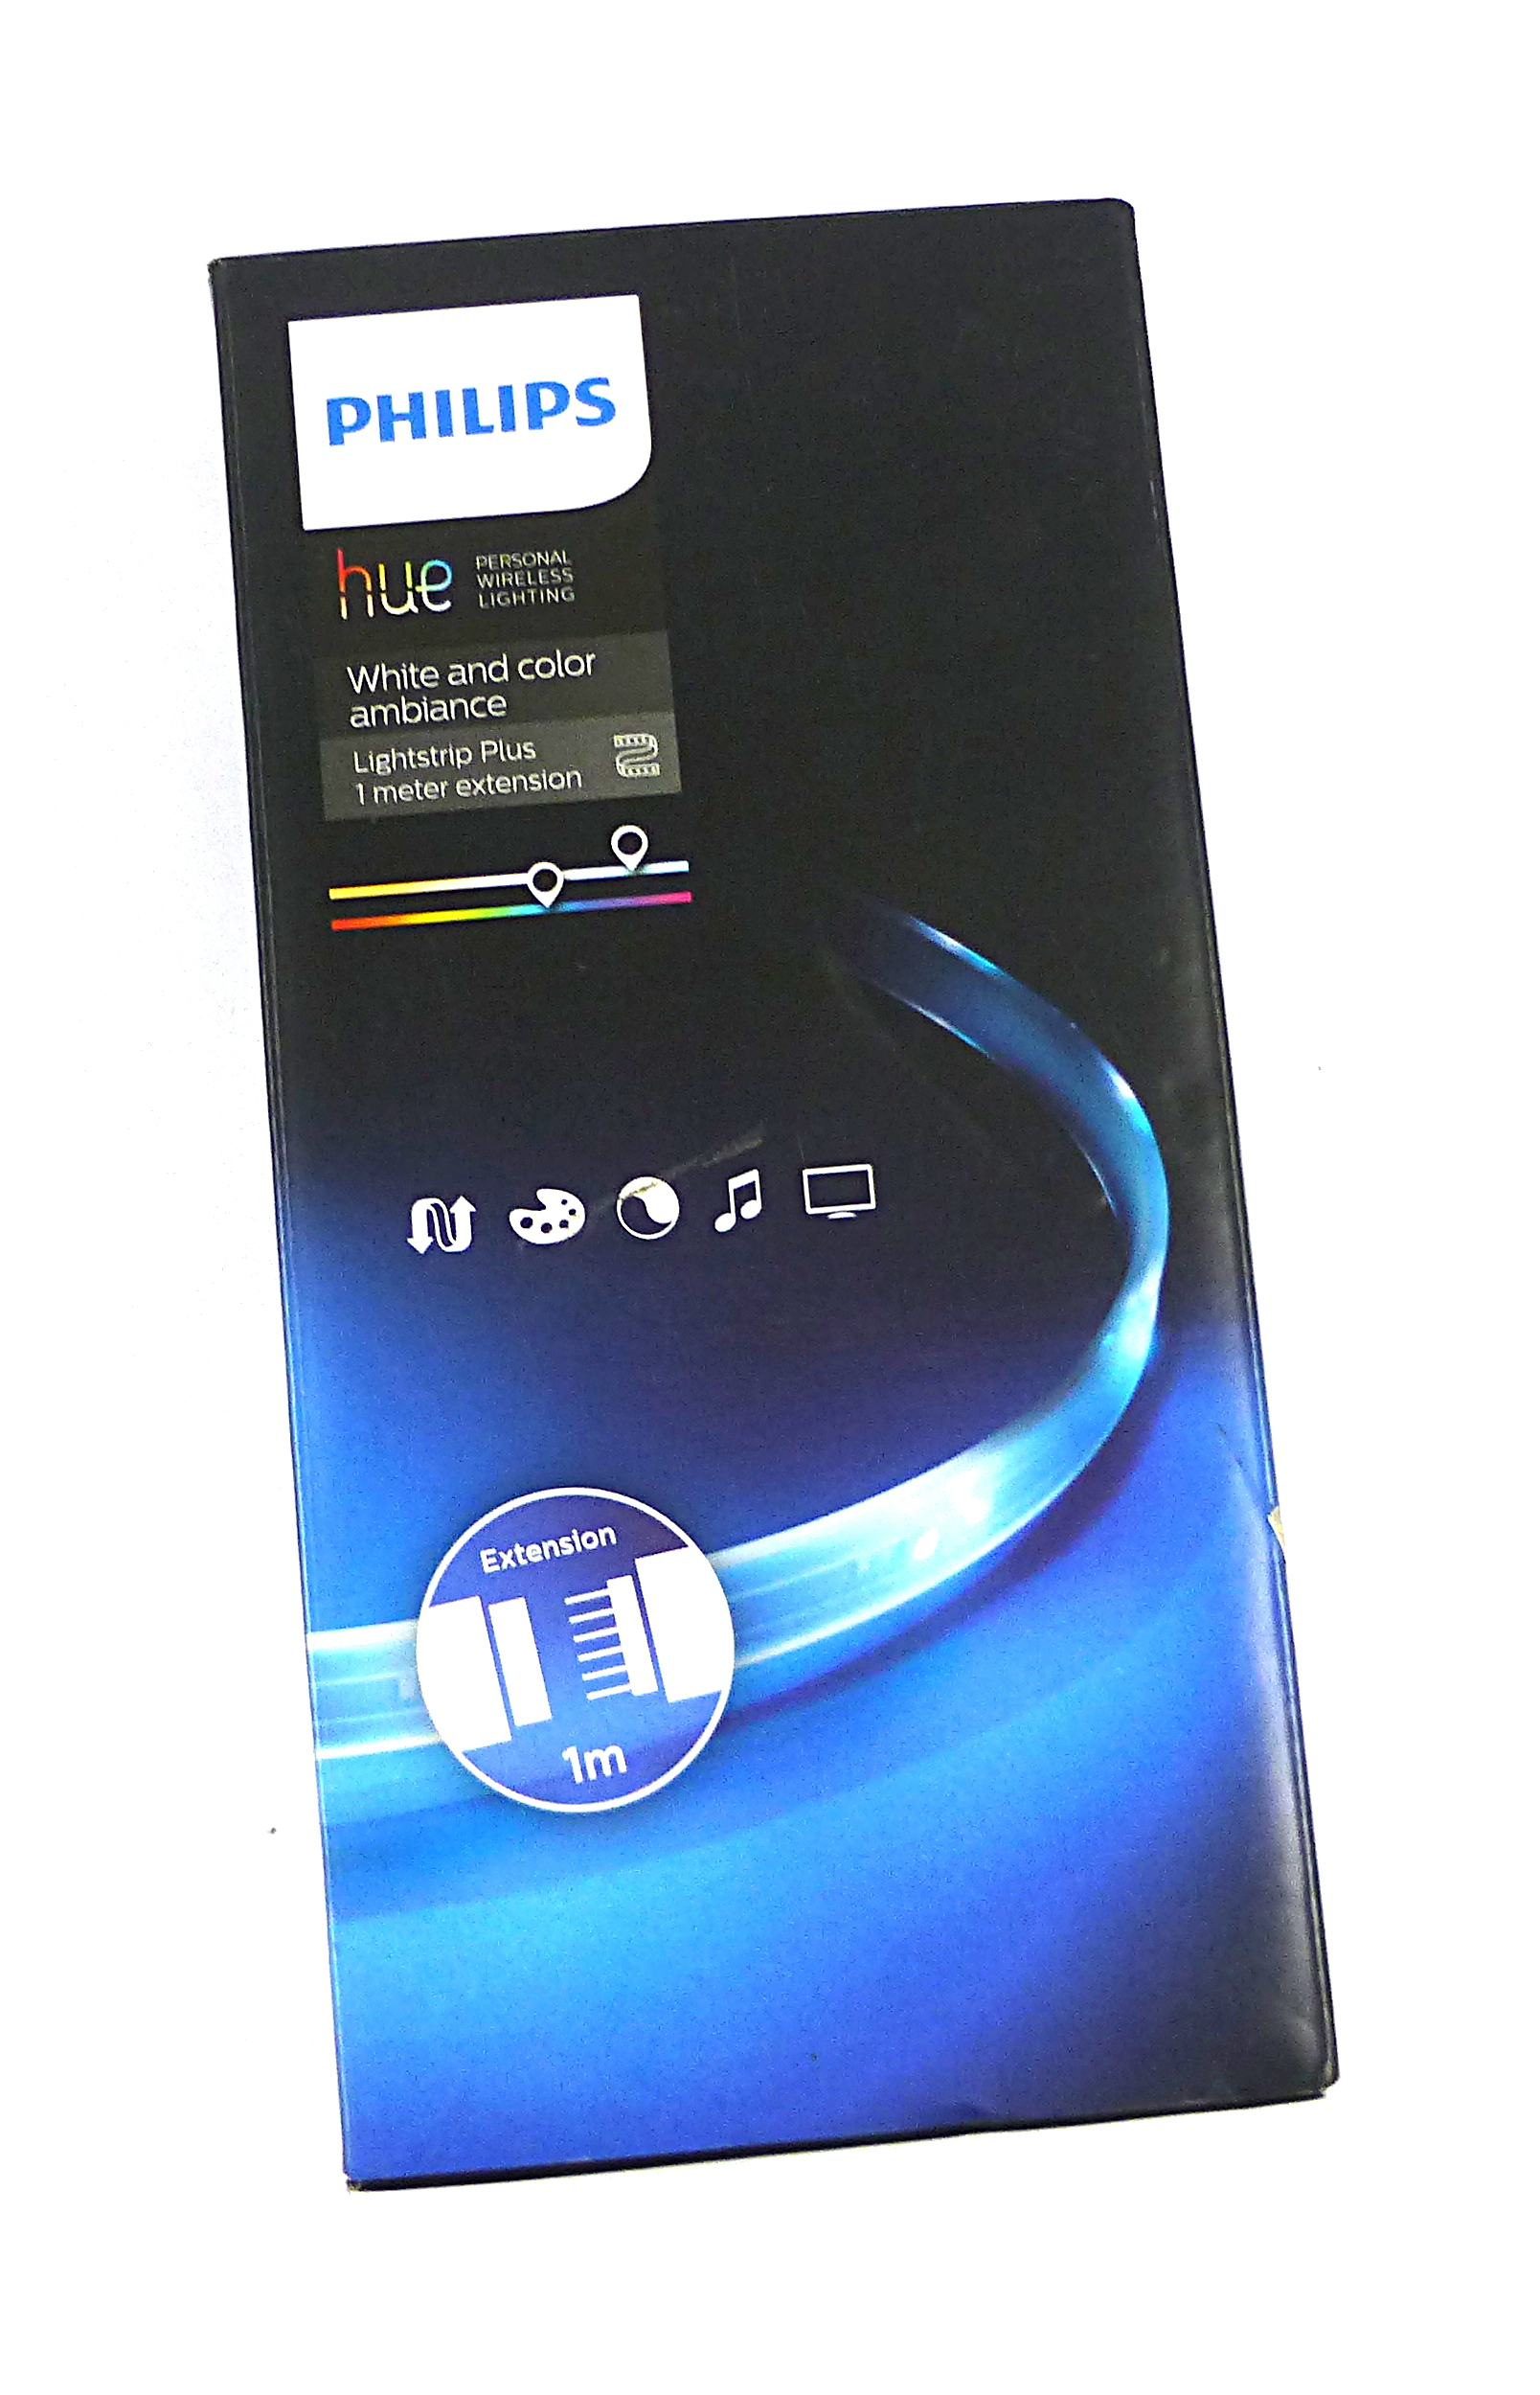 philips hue 71902 55 ph white and colour ambience lightstrip plus 1m extension ebay. Black Bedroom Furniture Sets. Home Design Ideas